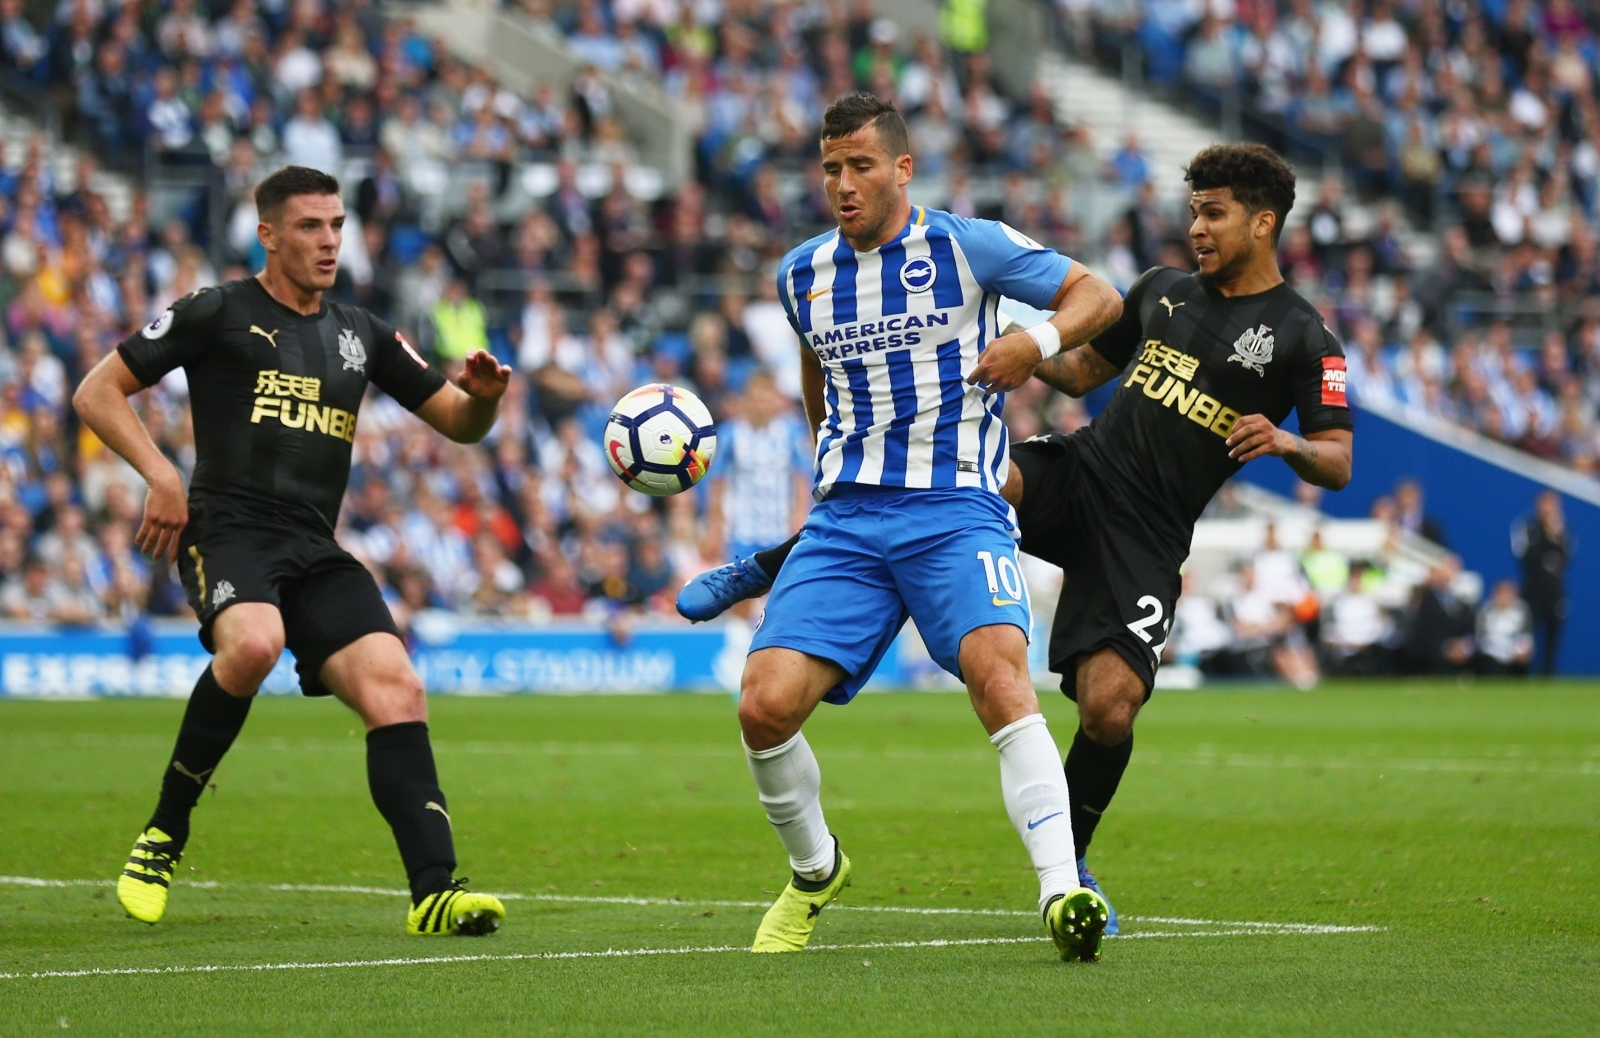 Brighton's Hemed handed three-match ban